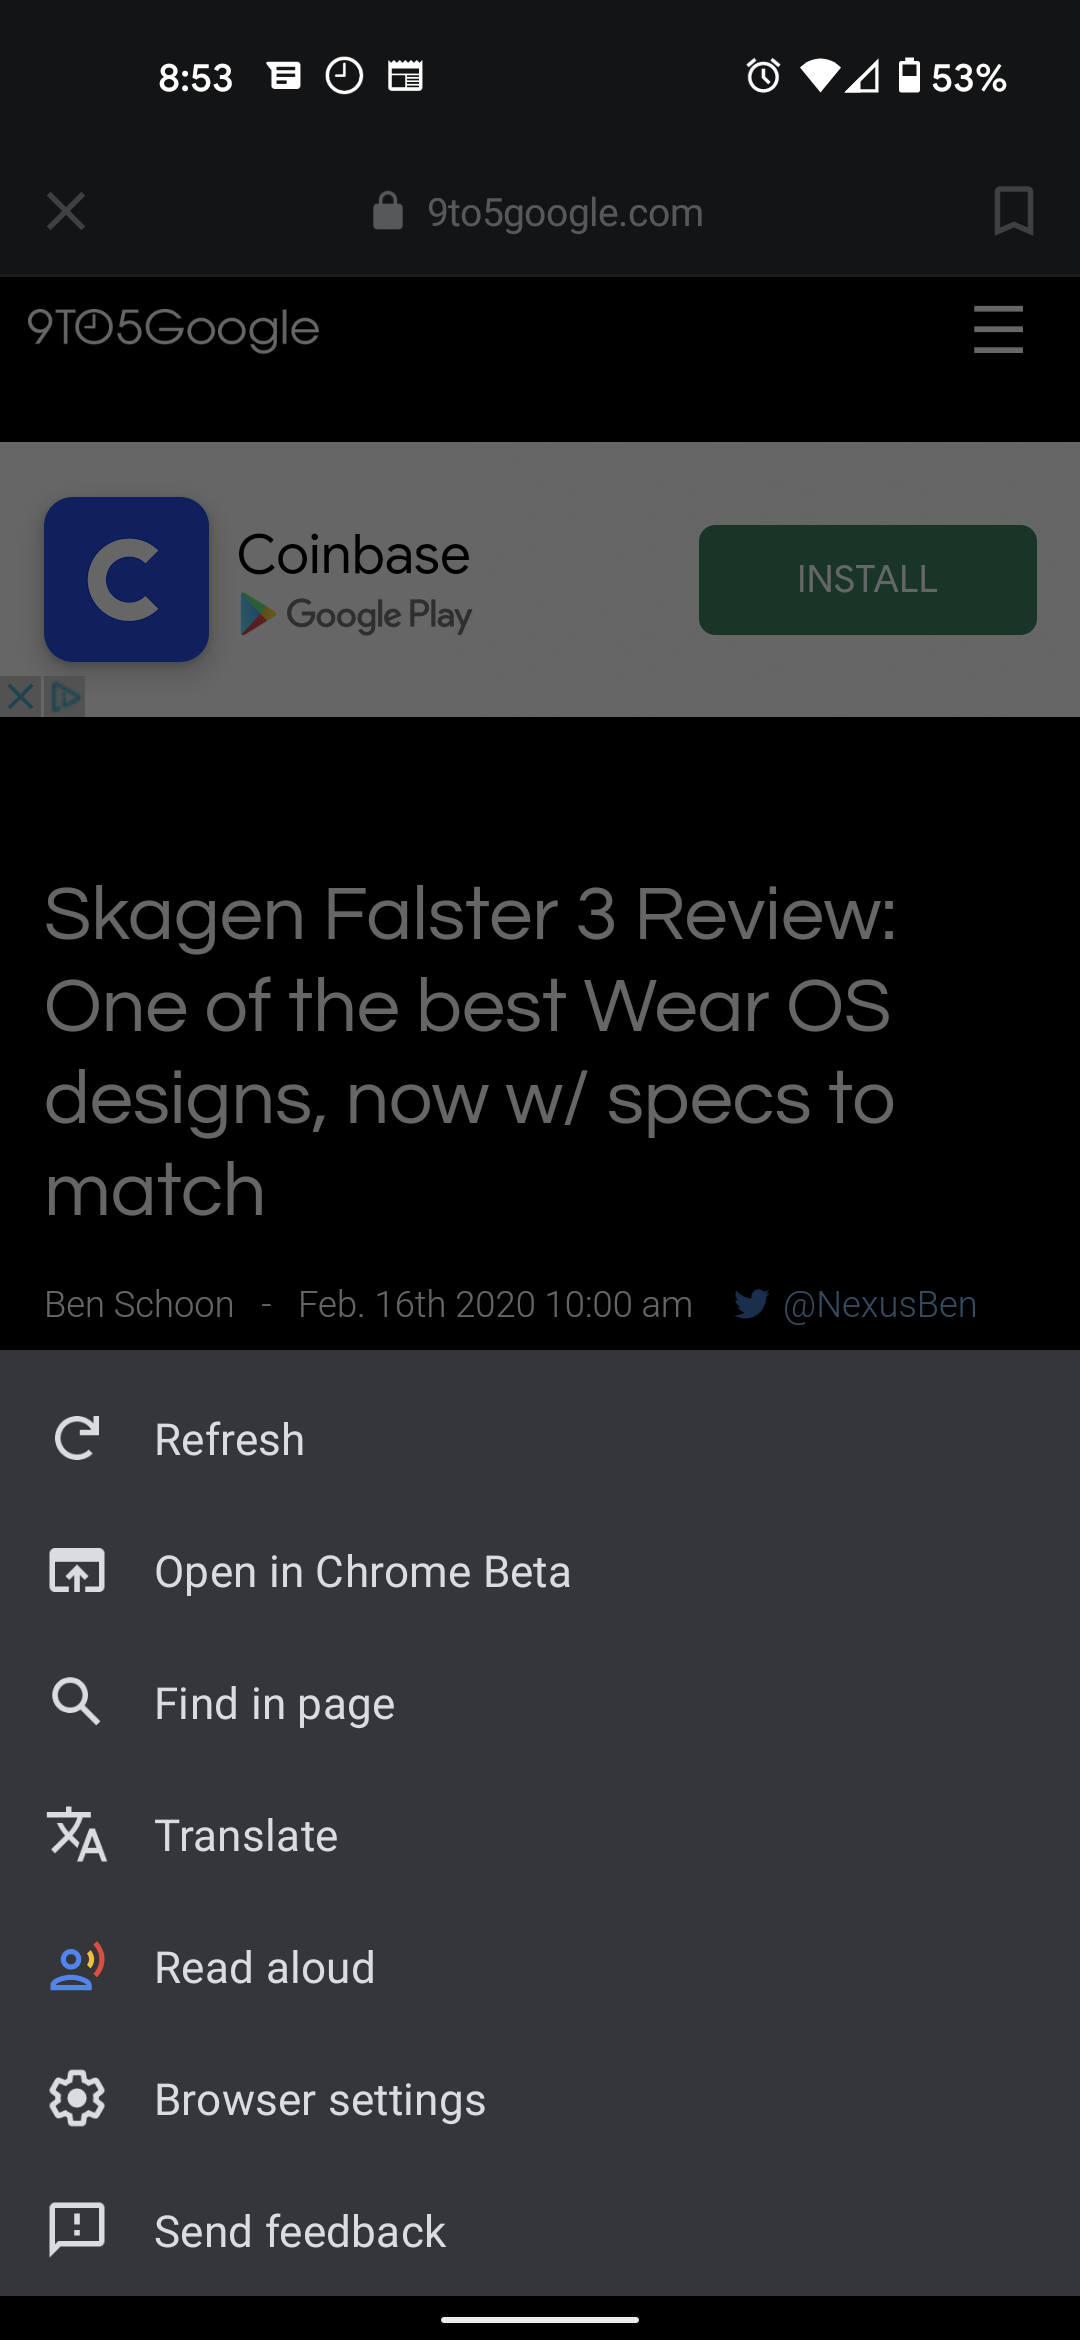 Read aloud and overlook options in the Google app's browser menu